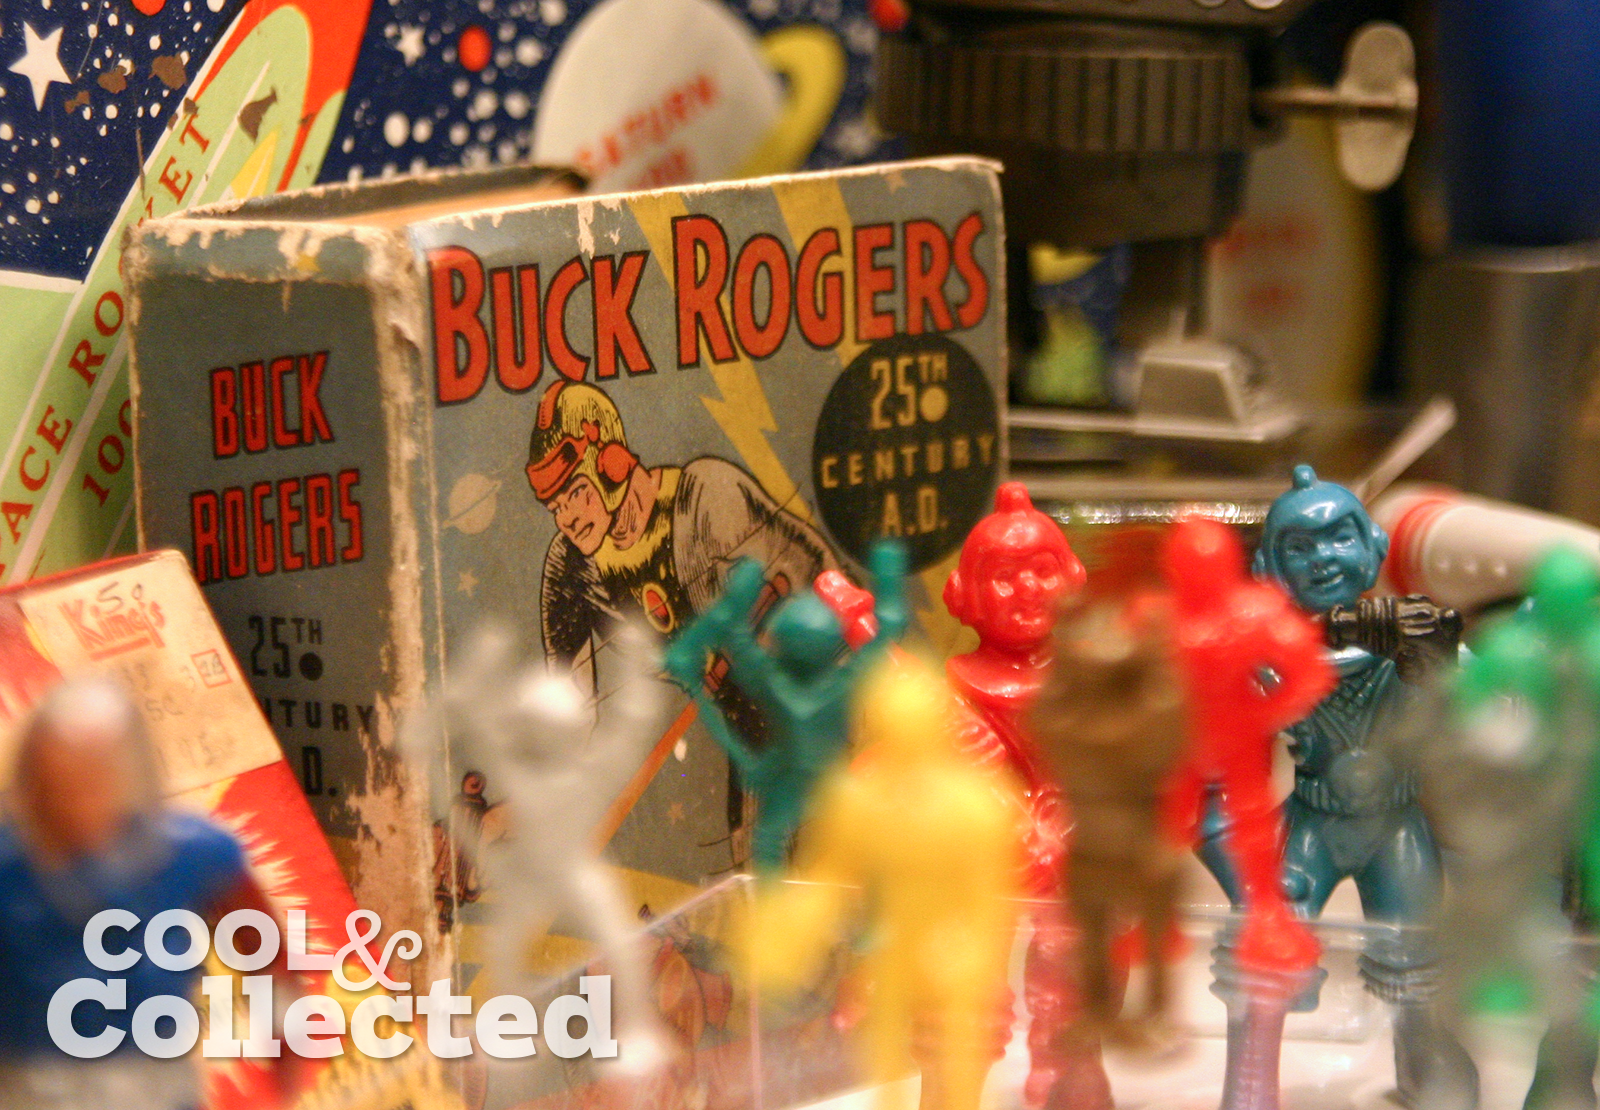 Vintage Buck Rogers Big Little Book with other space themed toys